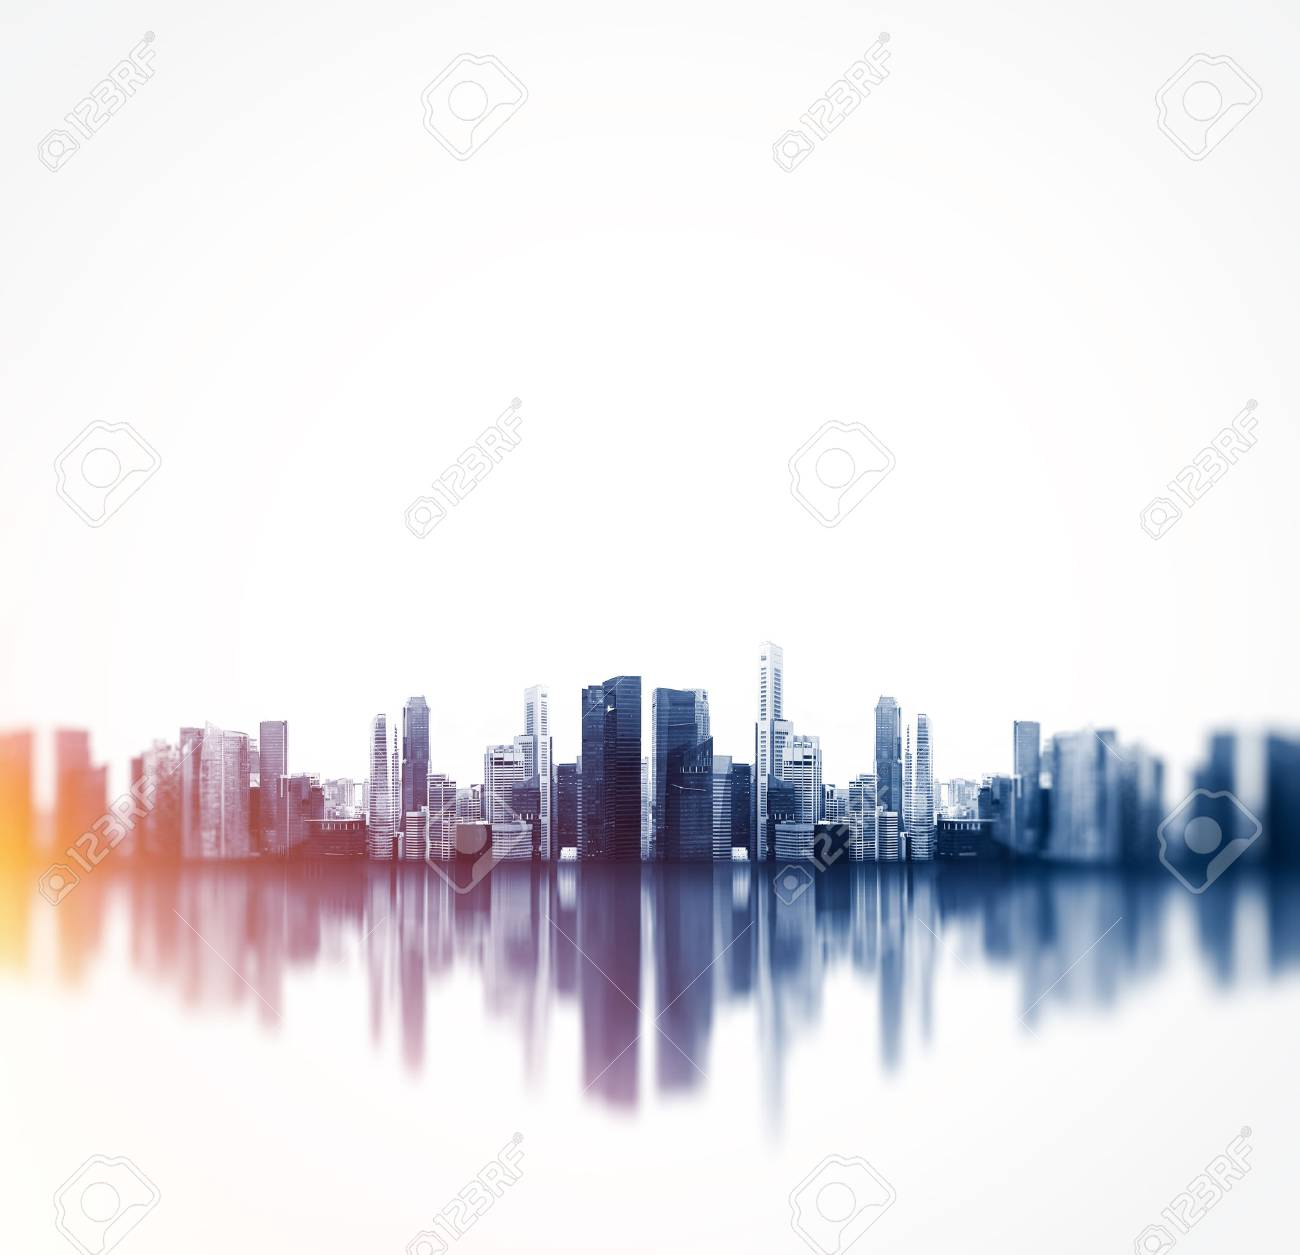 Panoramic view of a megalopolis with reflection. - 54818753